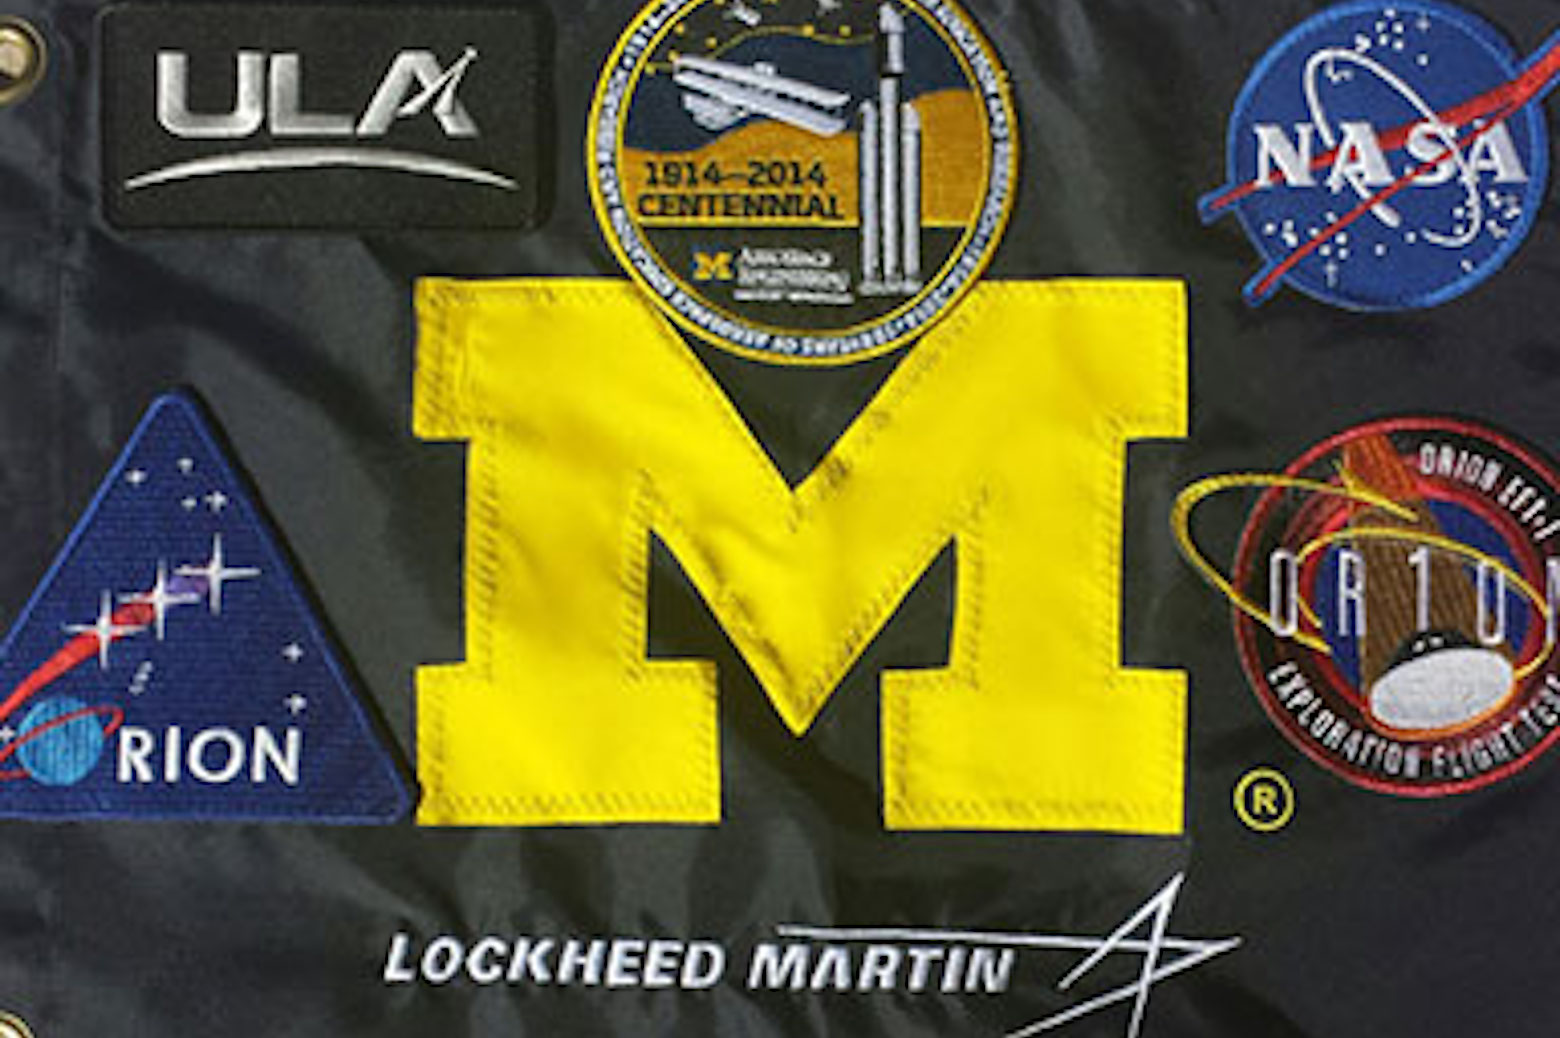 The Michigan flag, customized with patches